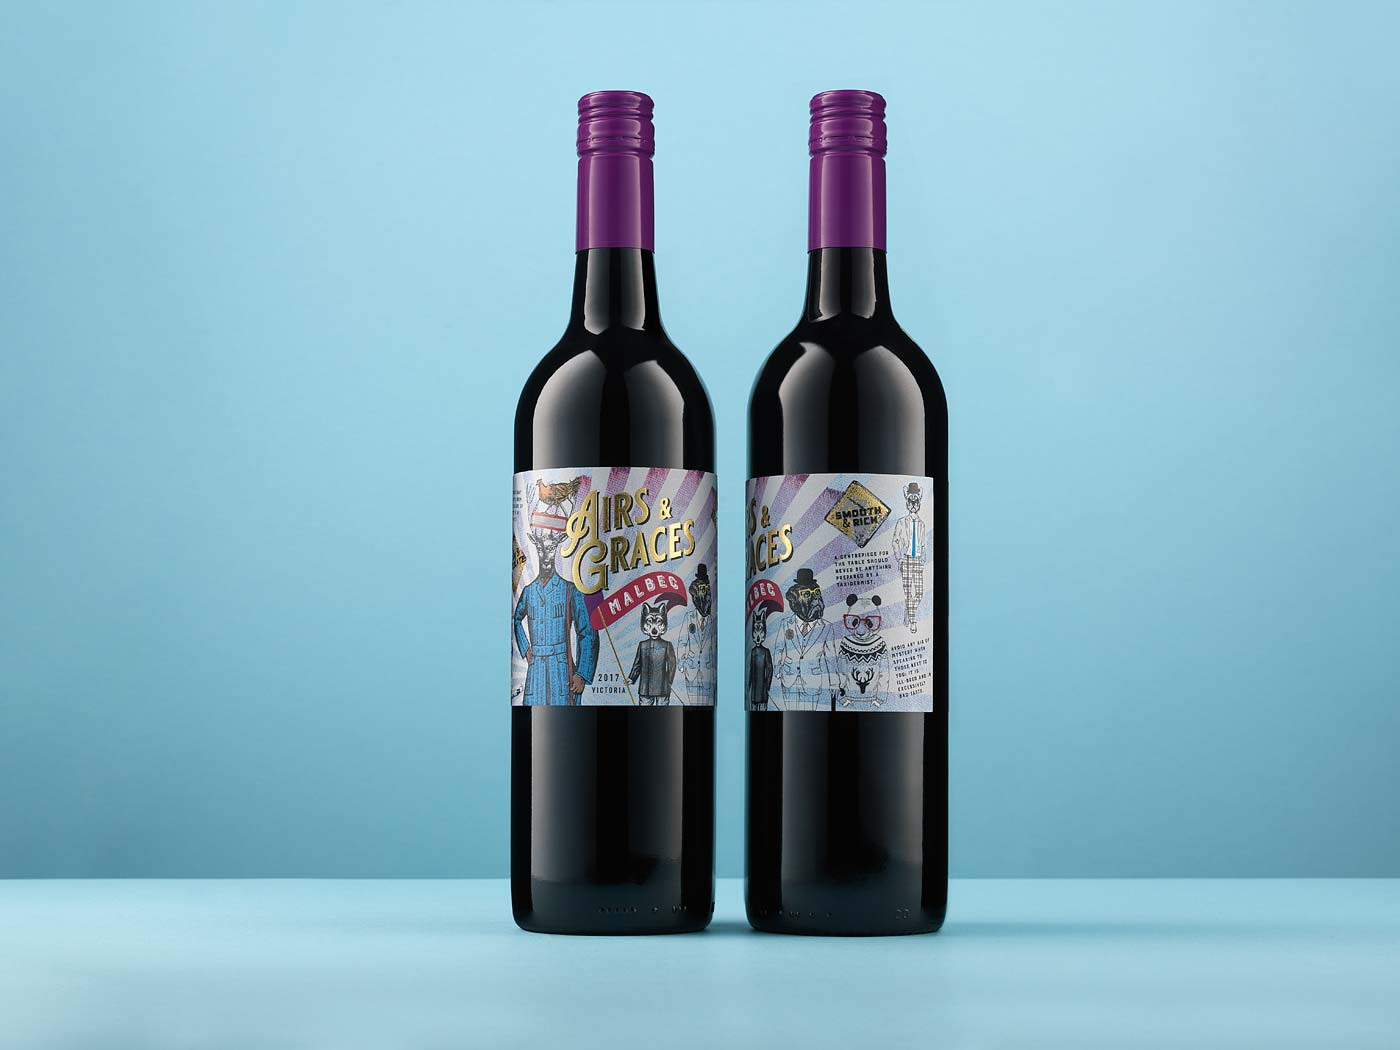 1230_0513_airs-and-graces-wine-bottle-photography.jpg